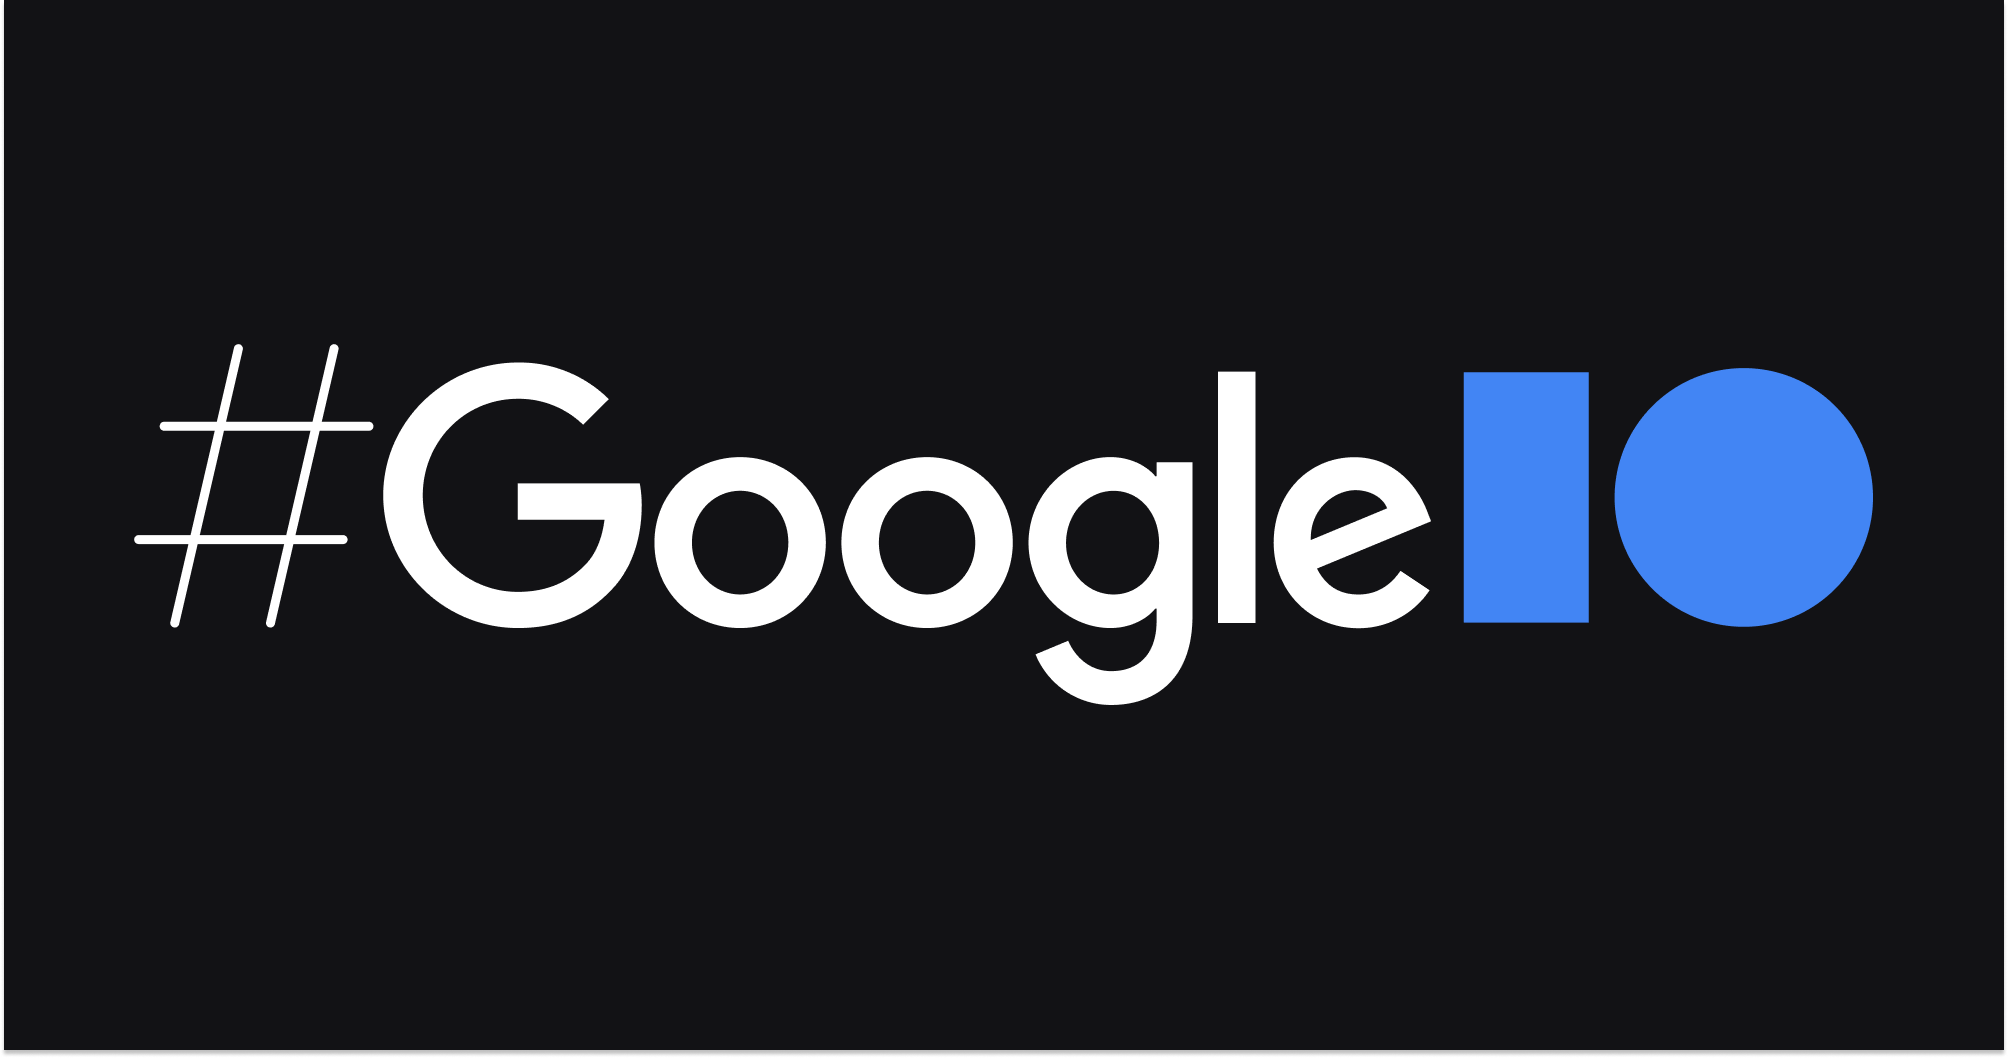 Join our Google I/O First Impressions livecast on May 18 2021 at 9 PM EST!